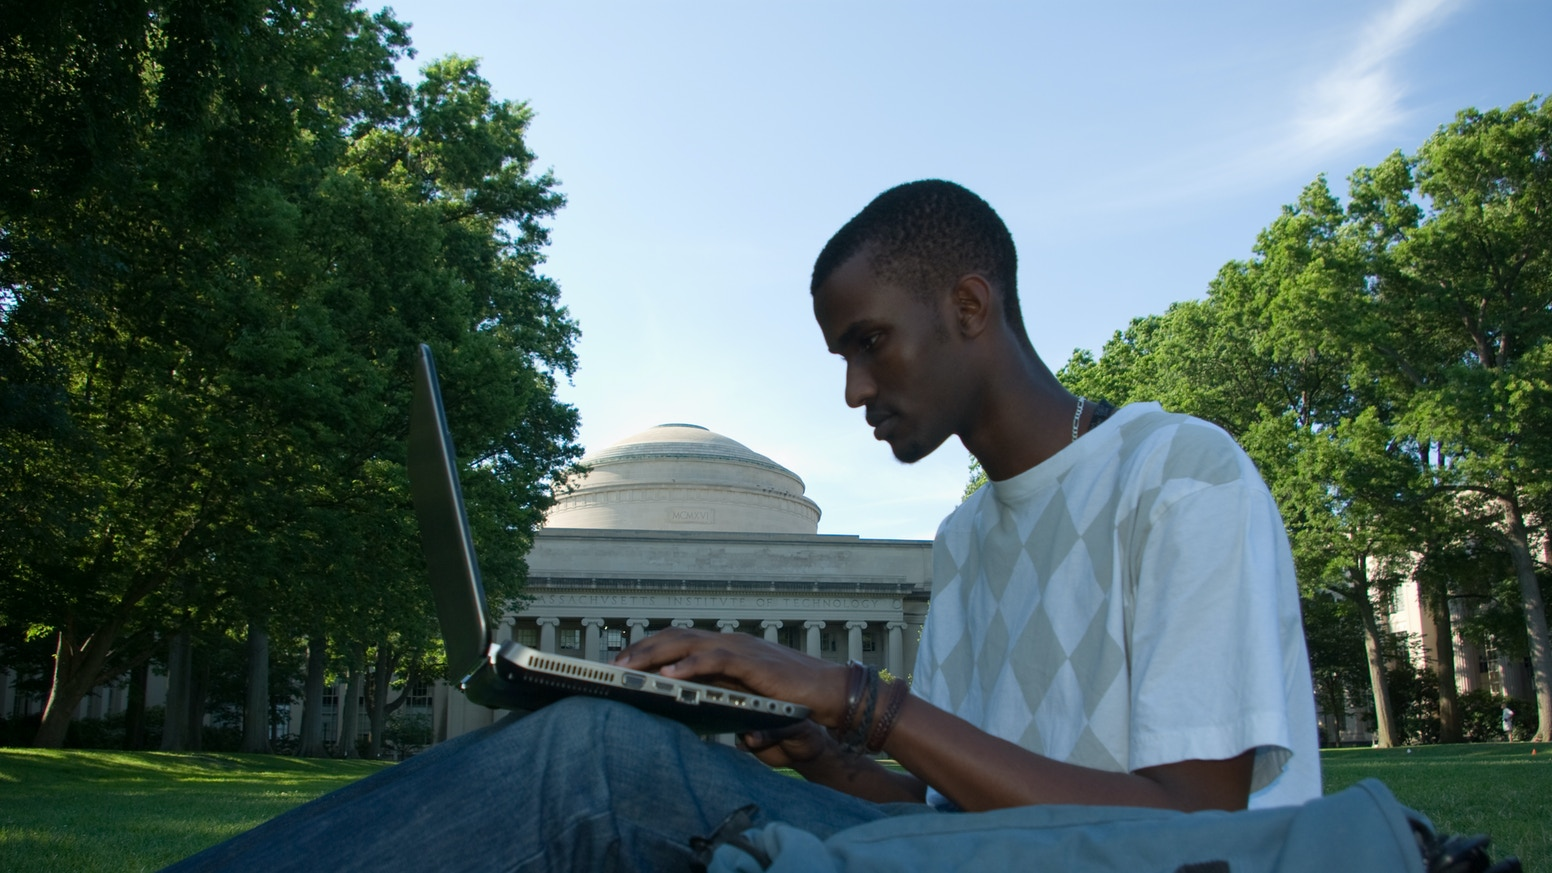 4 African youths pursue knowledge at an elite American university, MIT. Over 4 years they discover engineering, the world, themselves.